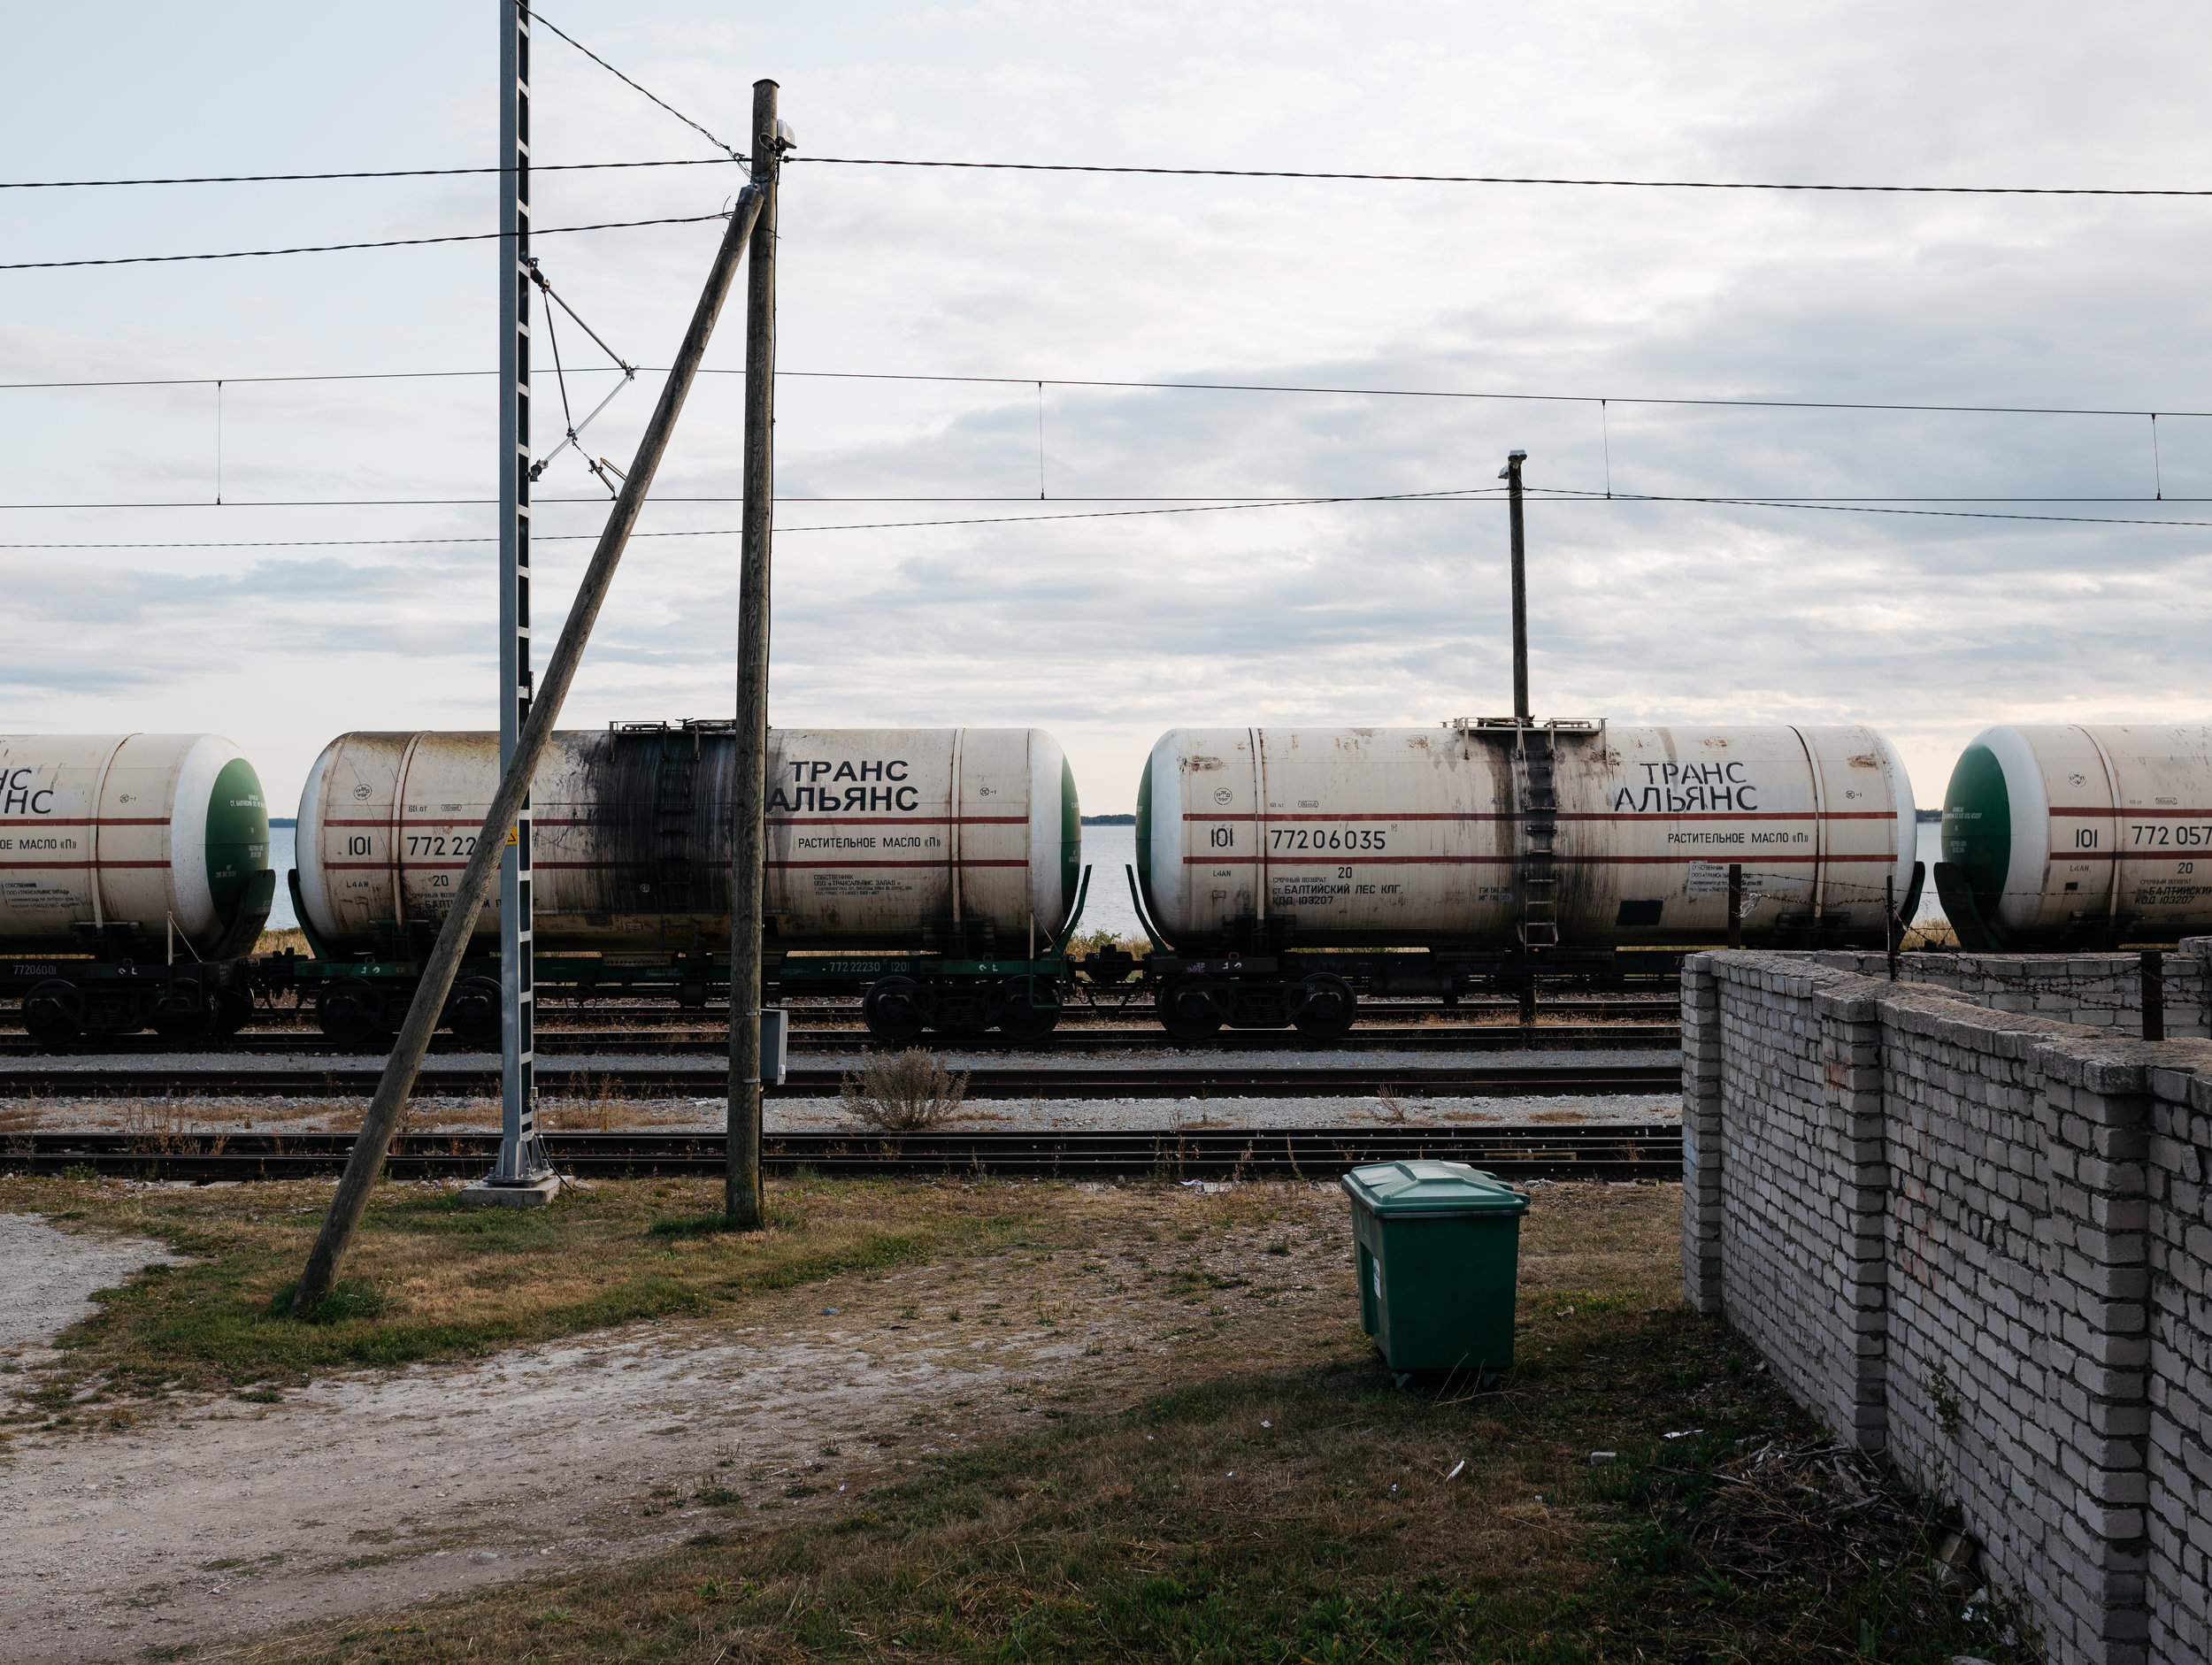 Paldiski, Estonia, August 2019